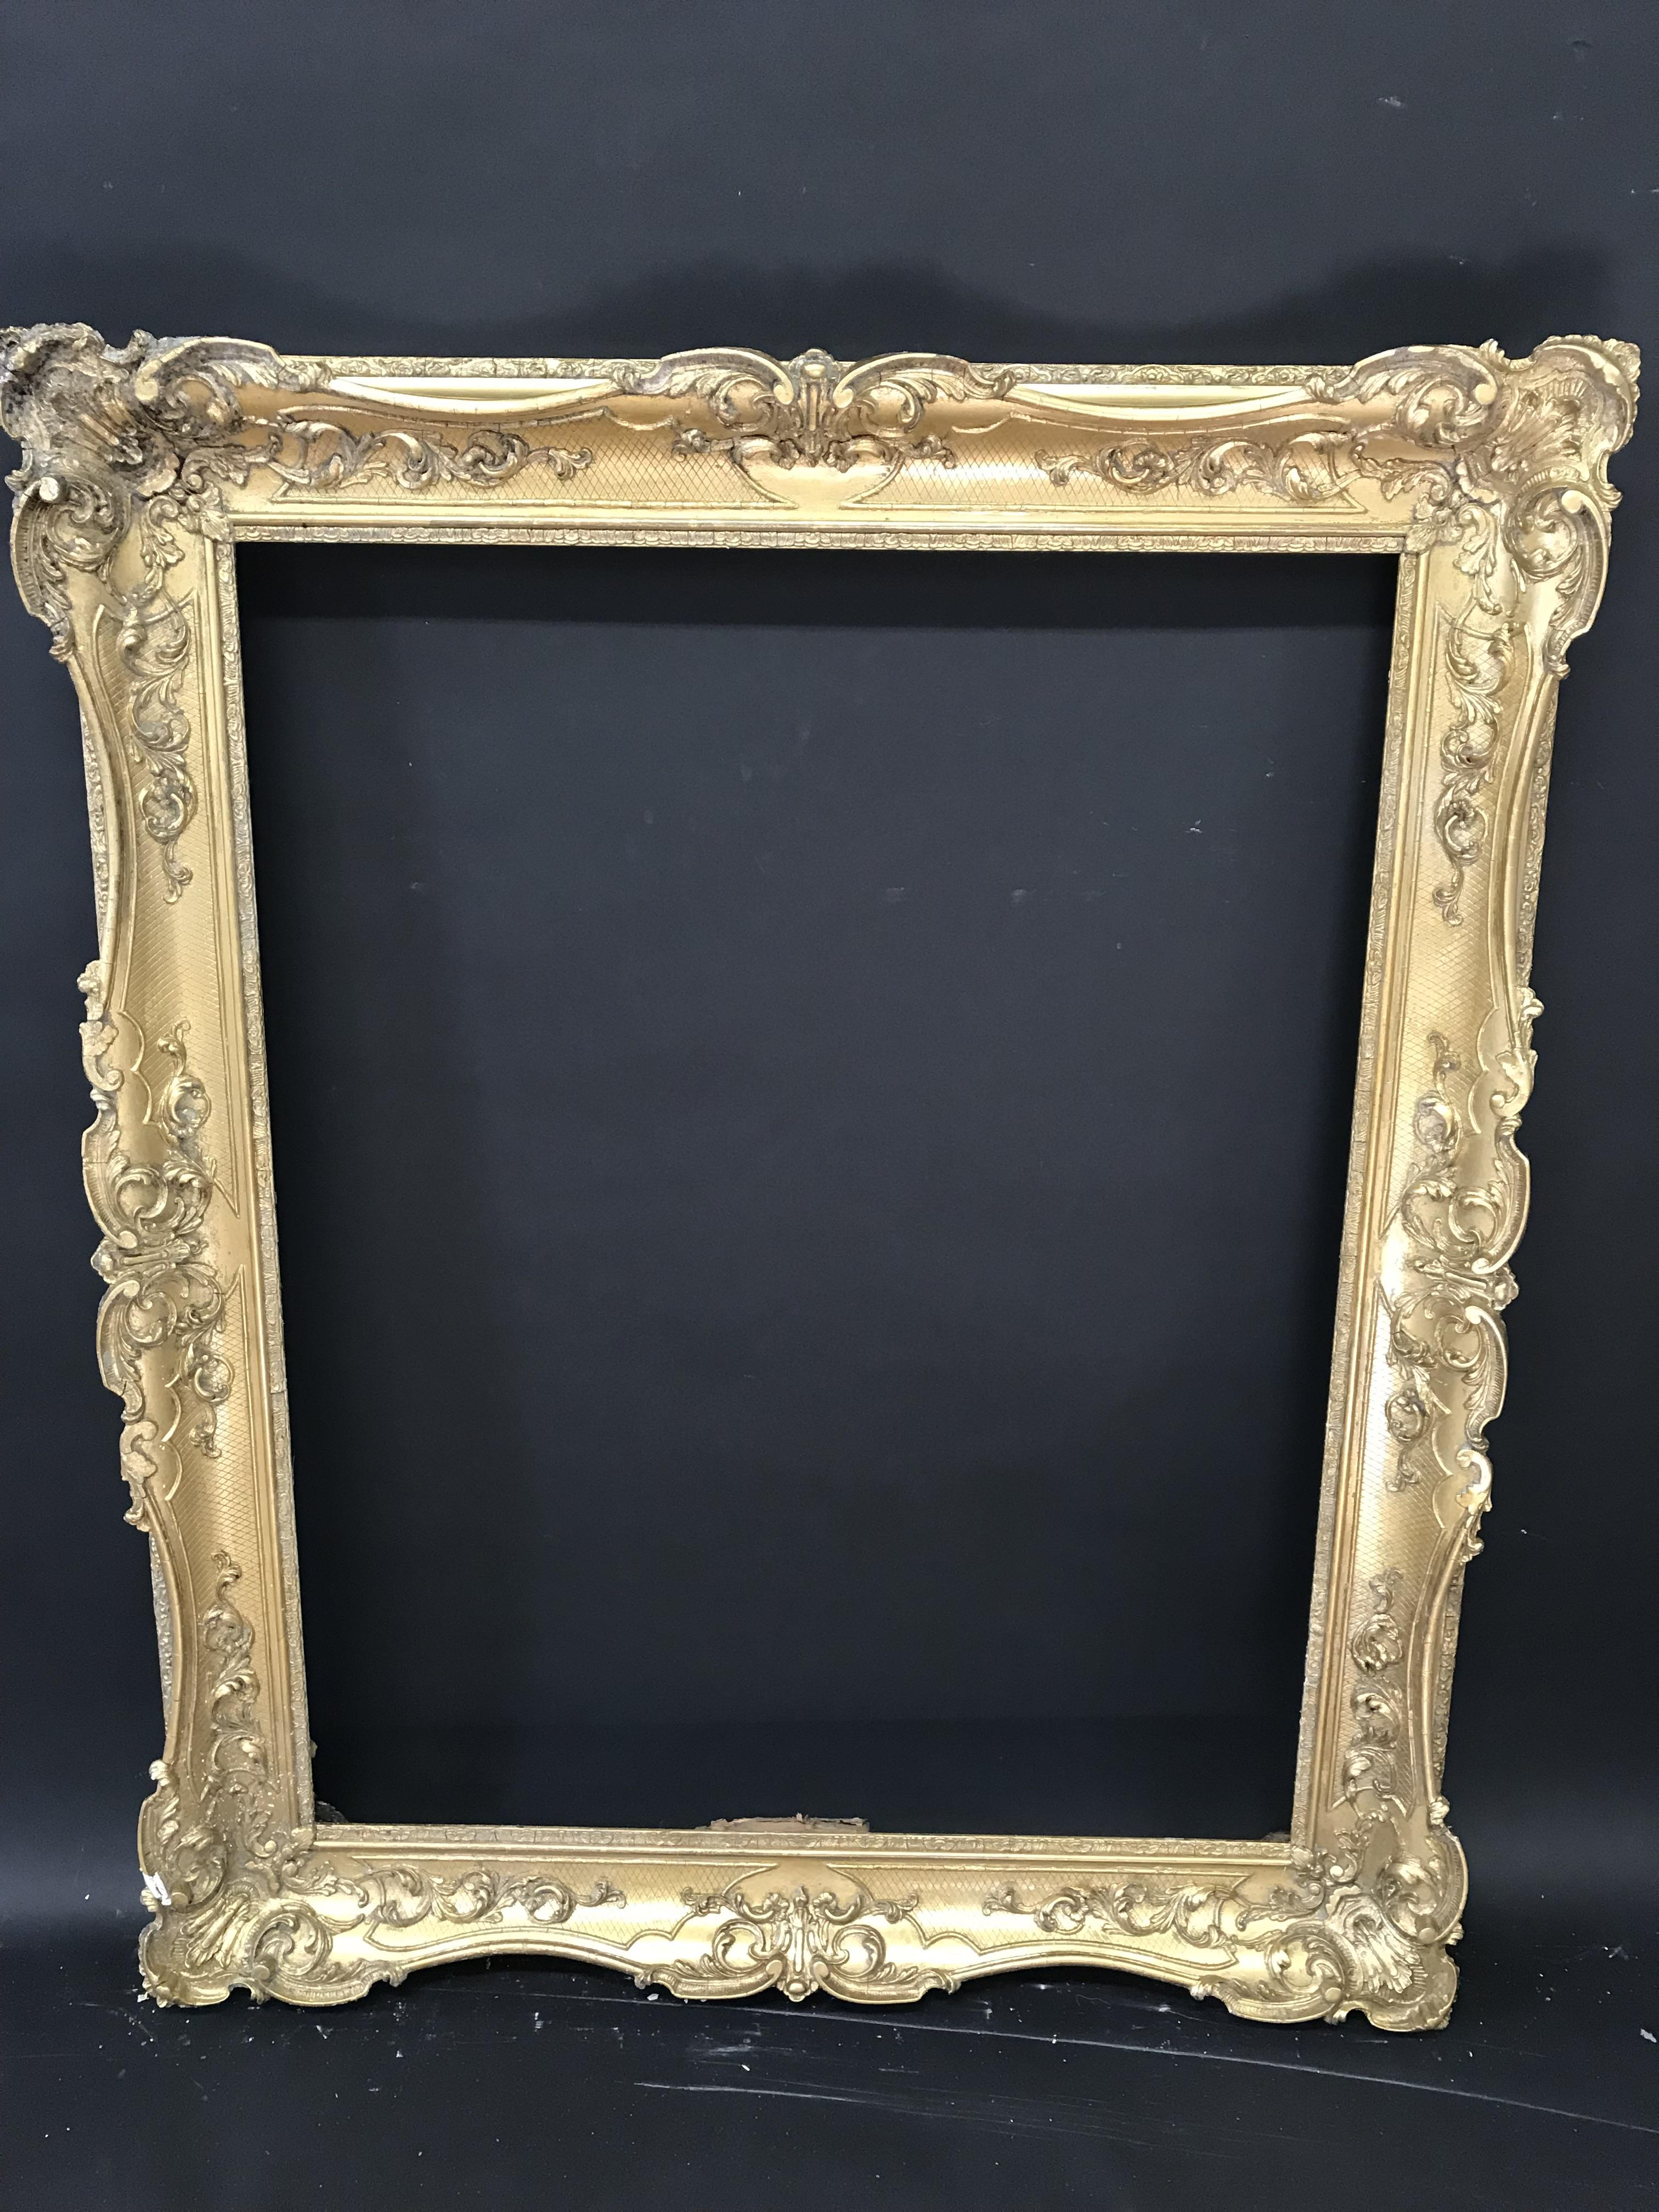 "Lot 39 - 19th Century English School. A Gilt Composition Frame, with Swept Centres and Corners, 38.5"" x 30.5"""